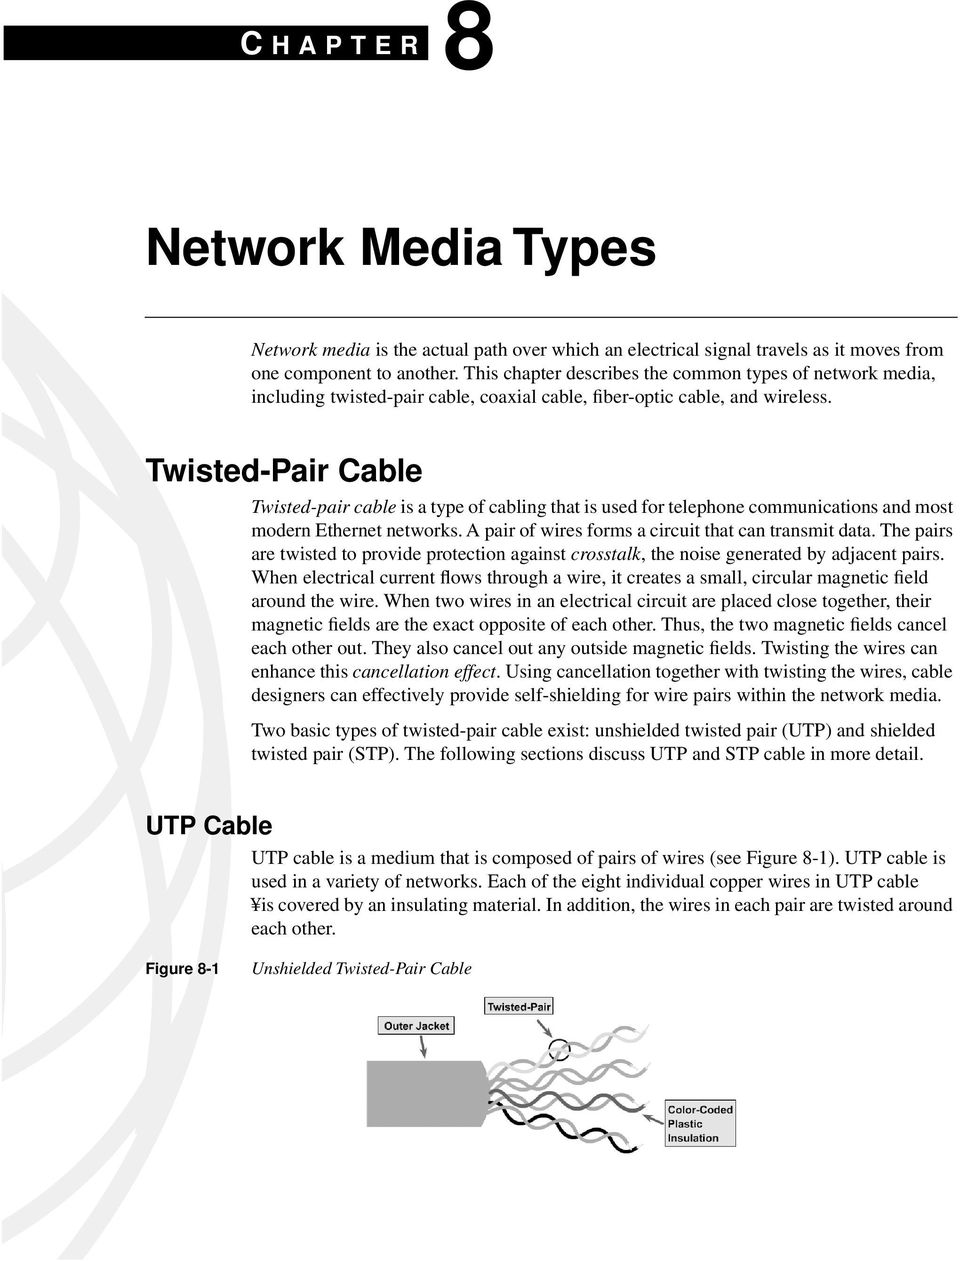 Twisted-Pair Cable Twisted-pair cable is a type of cabling that is used for telephone communications and most modern Ethernet networks. A pair of wires forms a circuit that can transmit data.